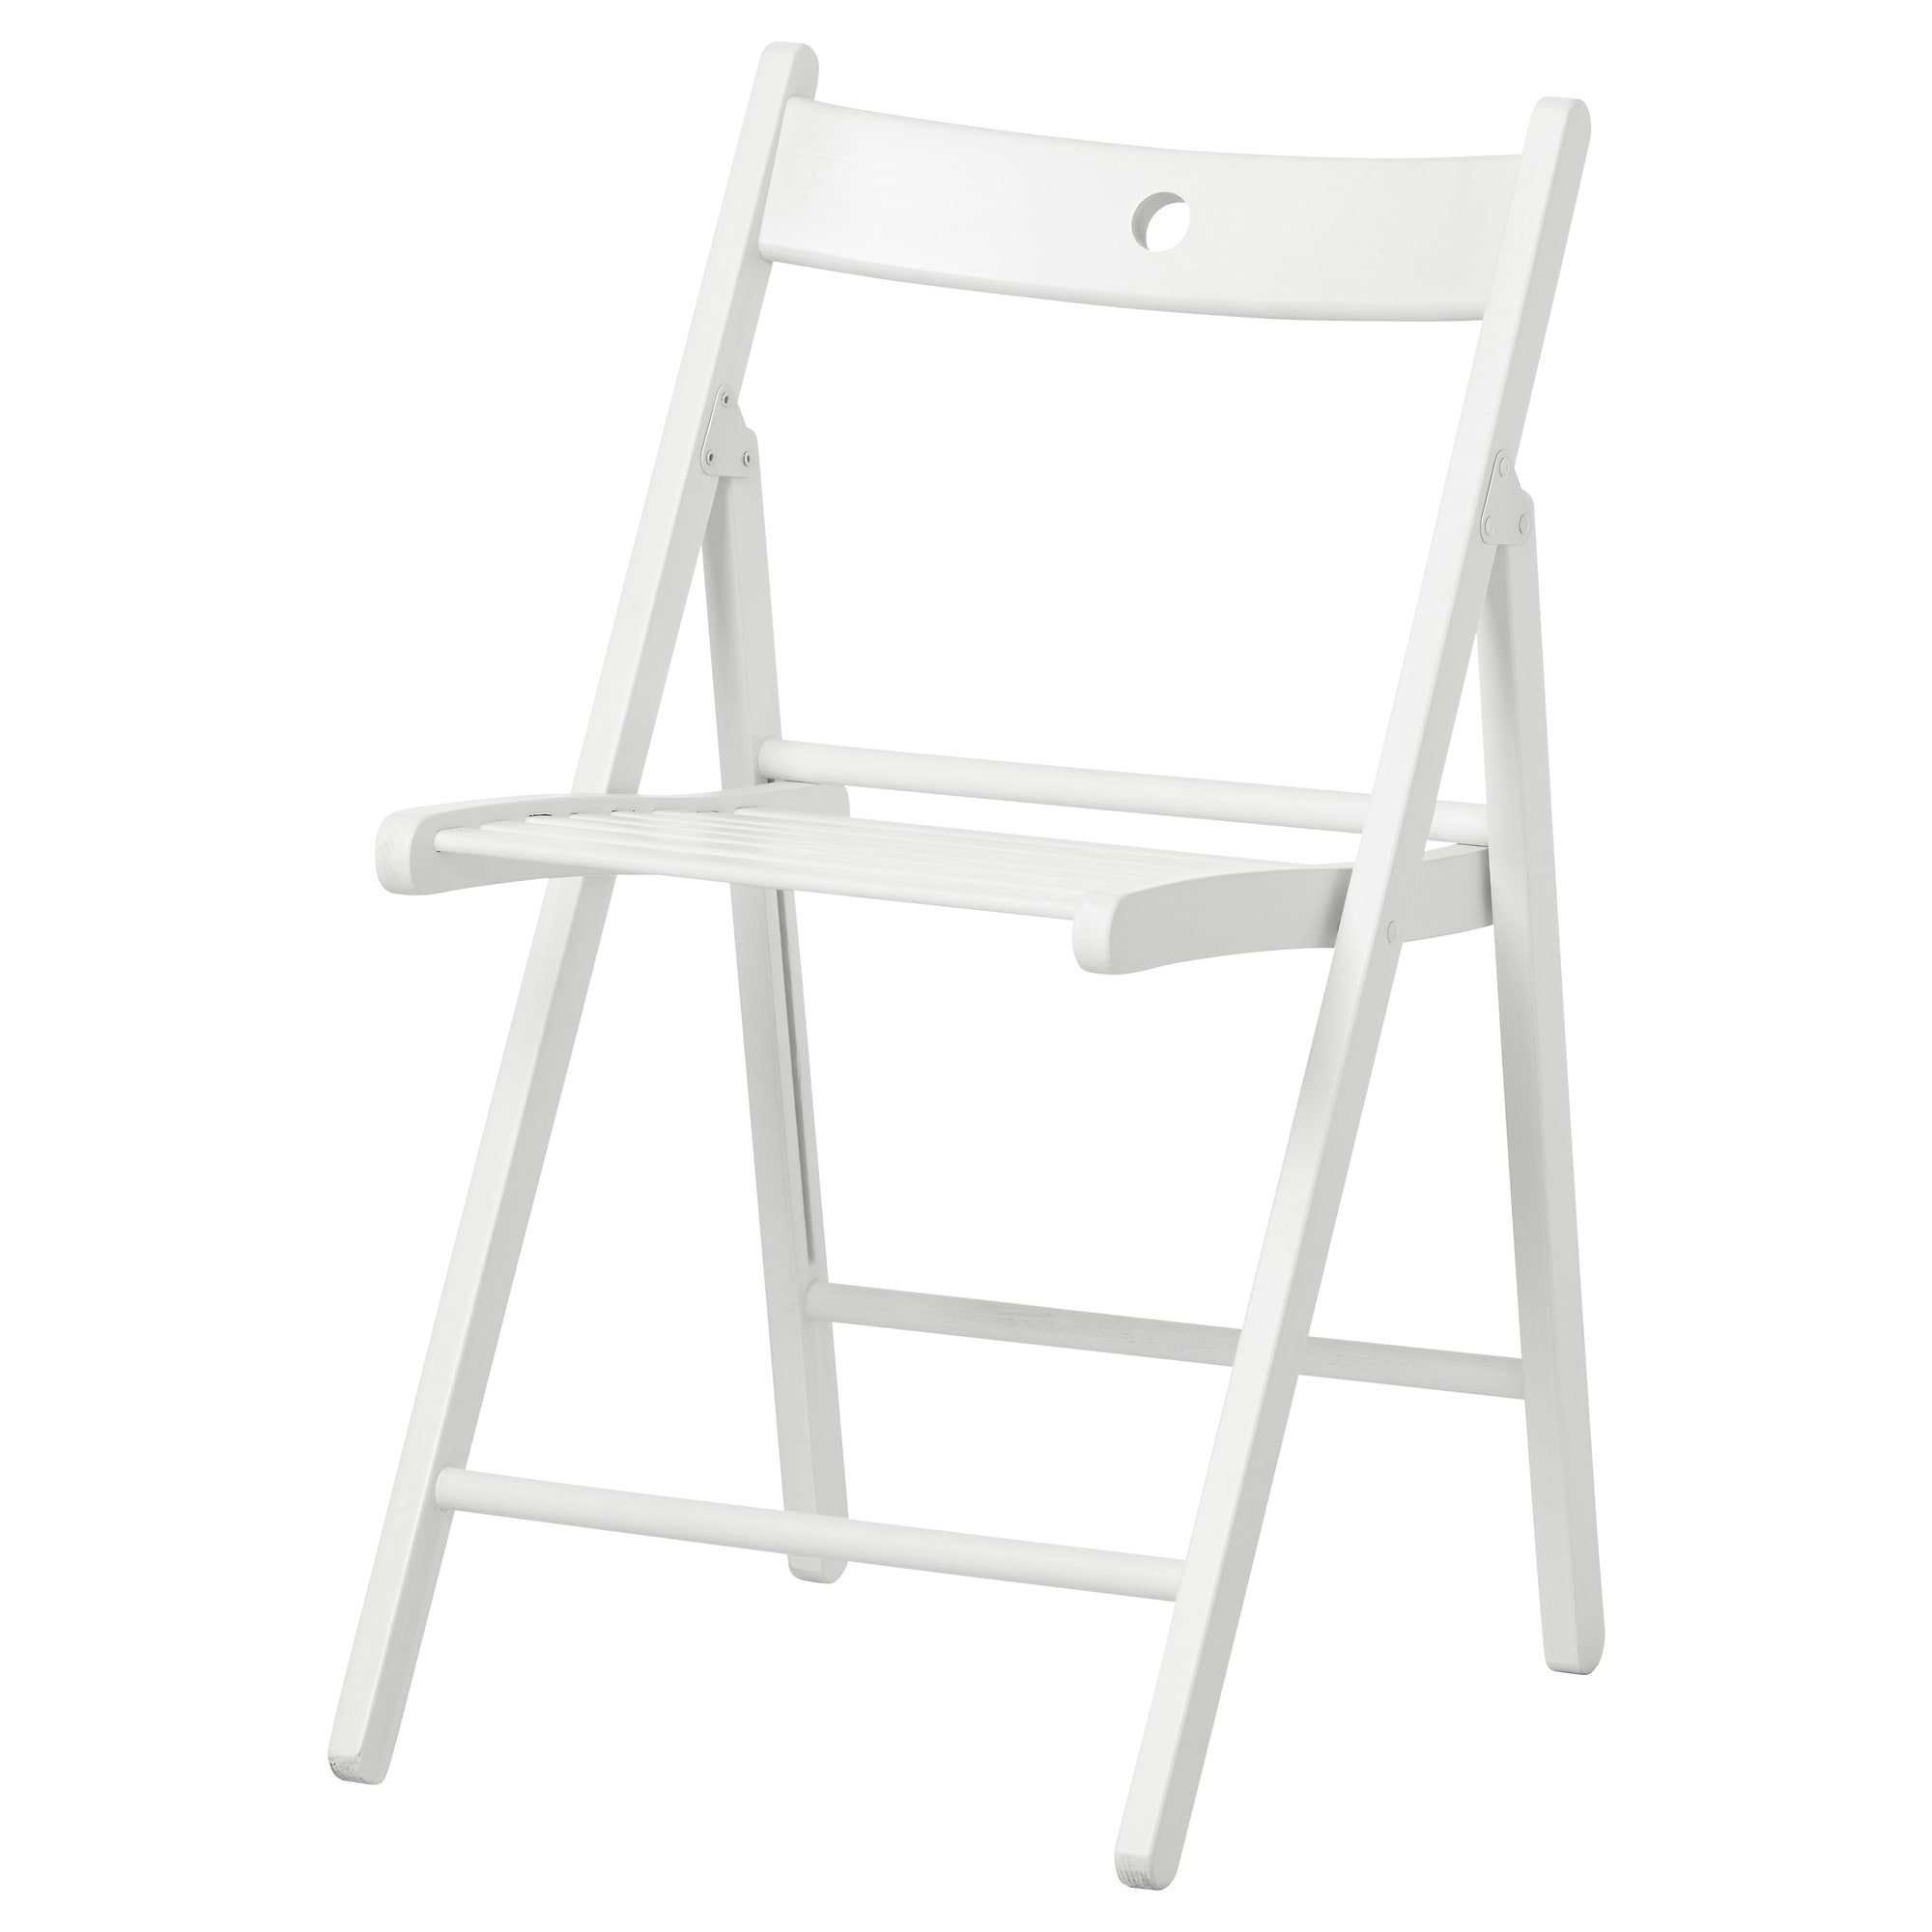 TERJE Folding chair IKEA